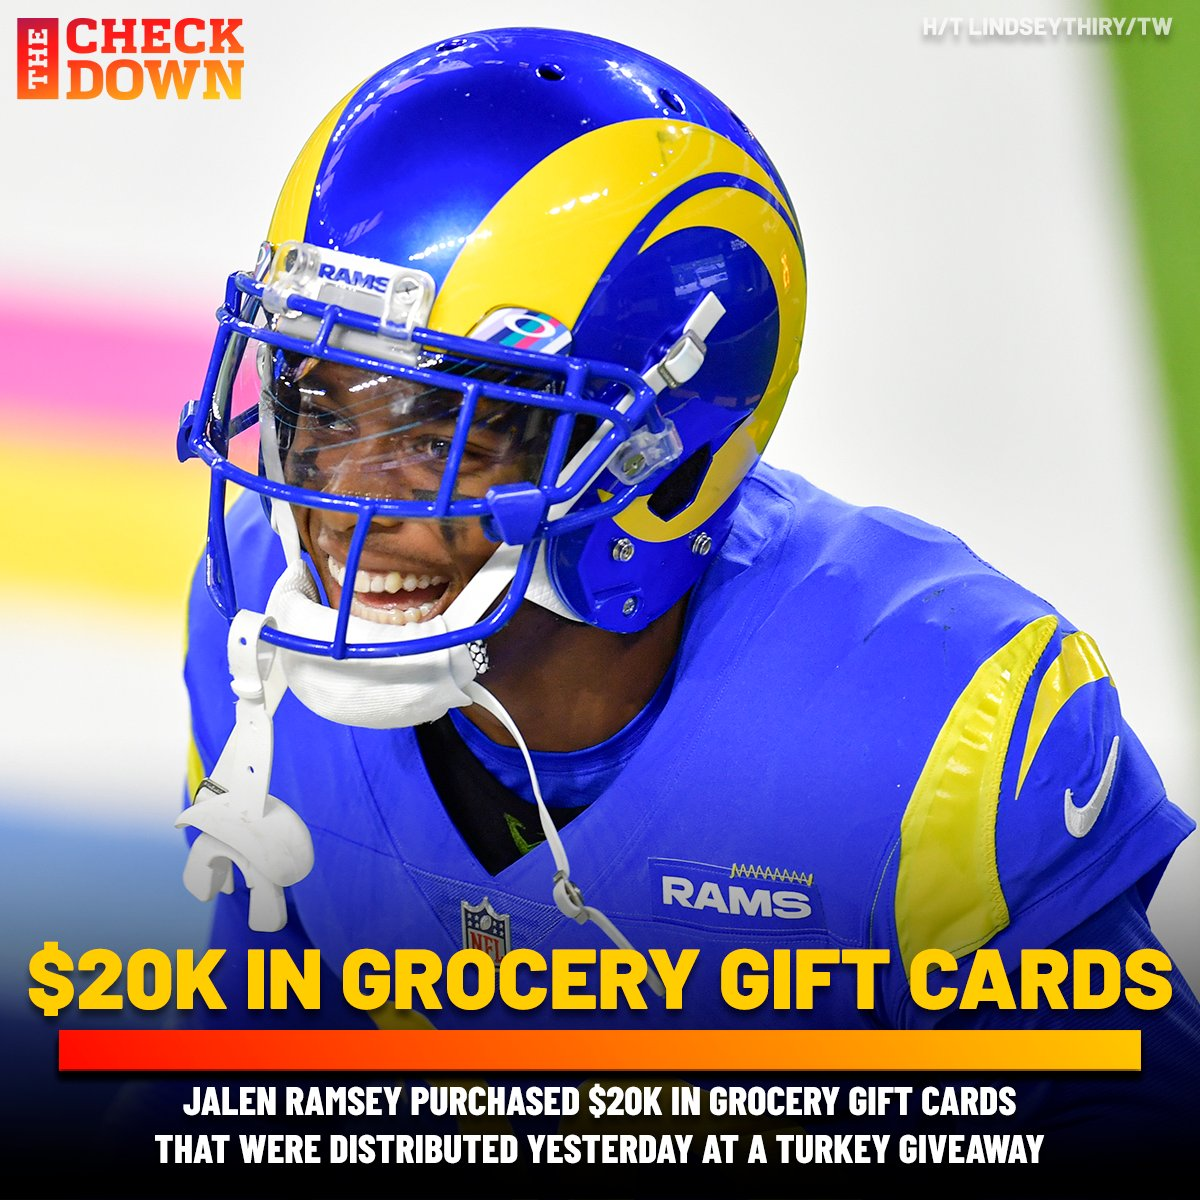 Jalen Ramsey is making plays on and off the field this holiday season 🙏